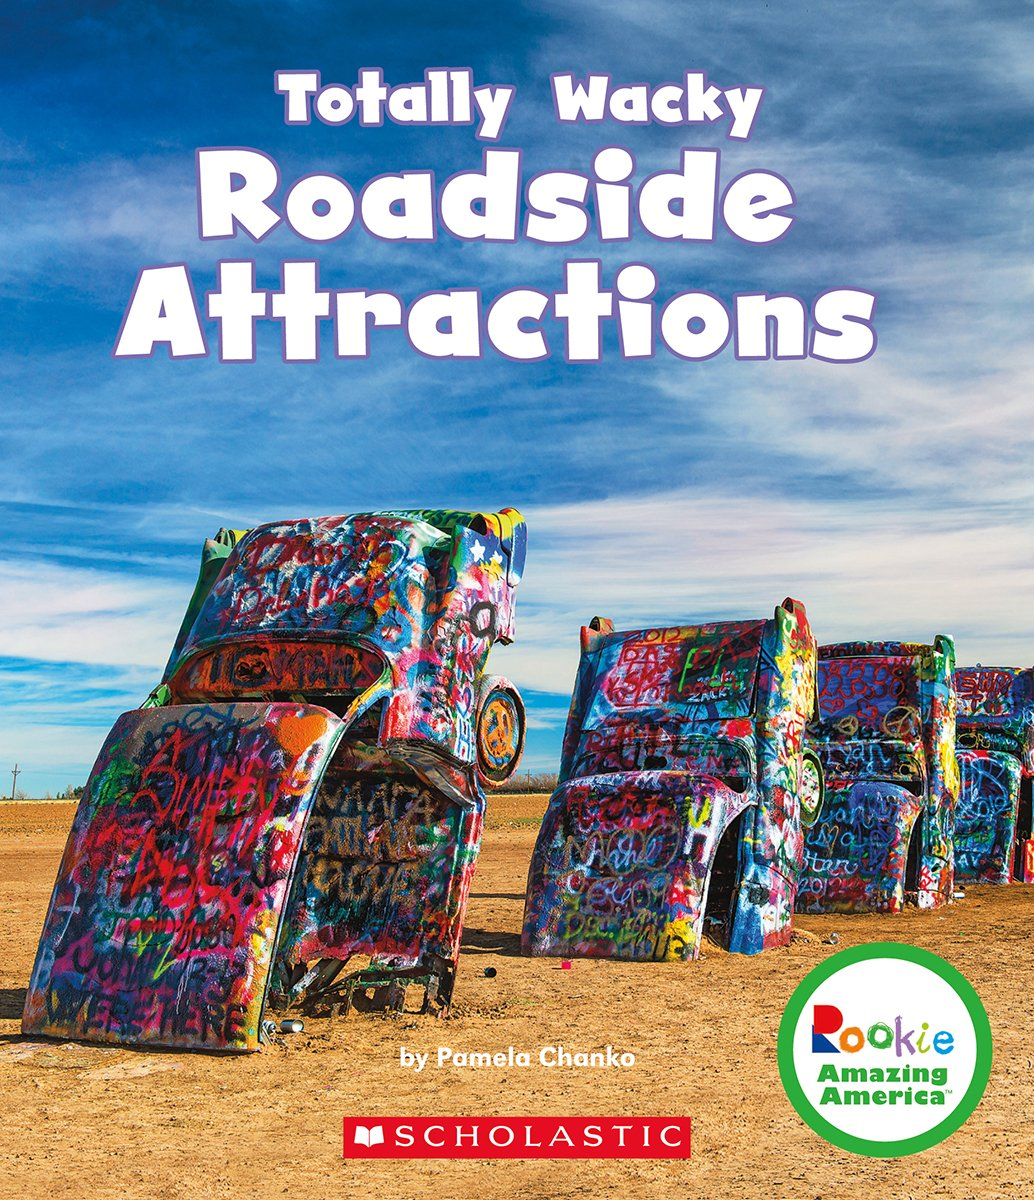 totally-wacky-roadside-attractions-rookie-amazing-america